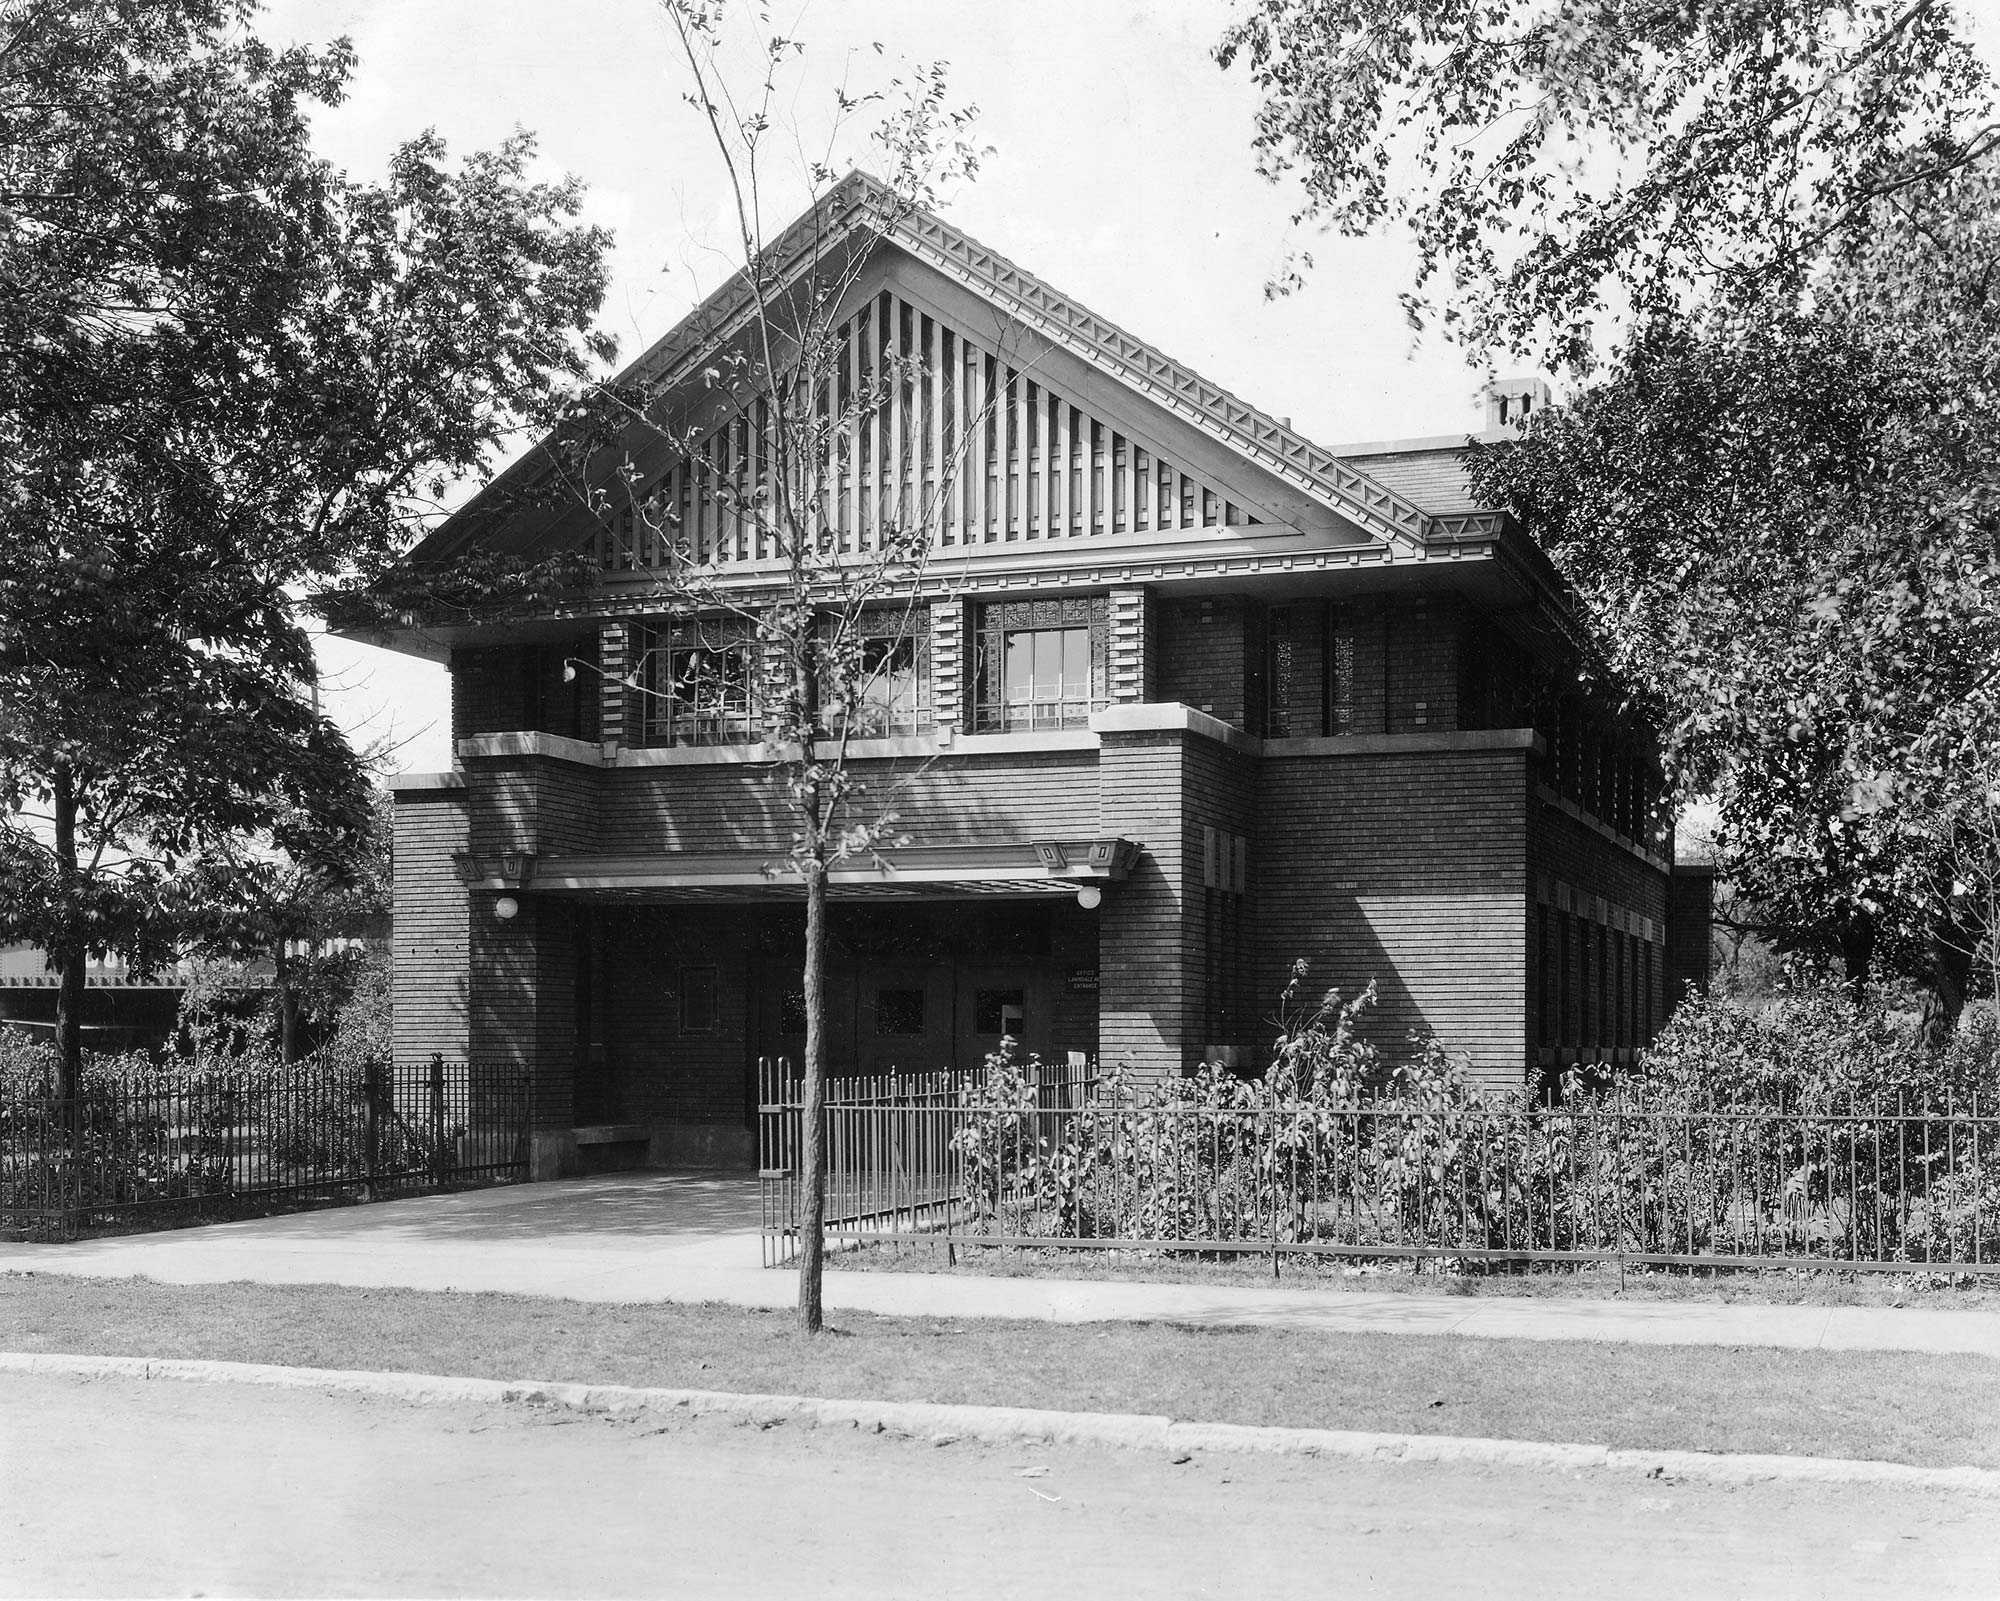 William Drummond, who worked for several years under architect Frank Lloyd Wright, designed Shedd Park's field house, ca. 1920.